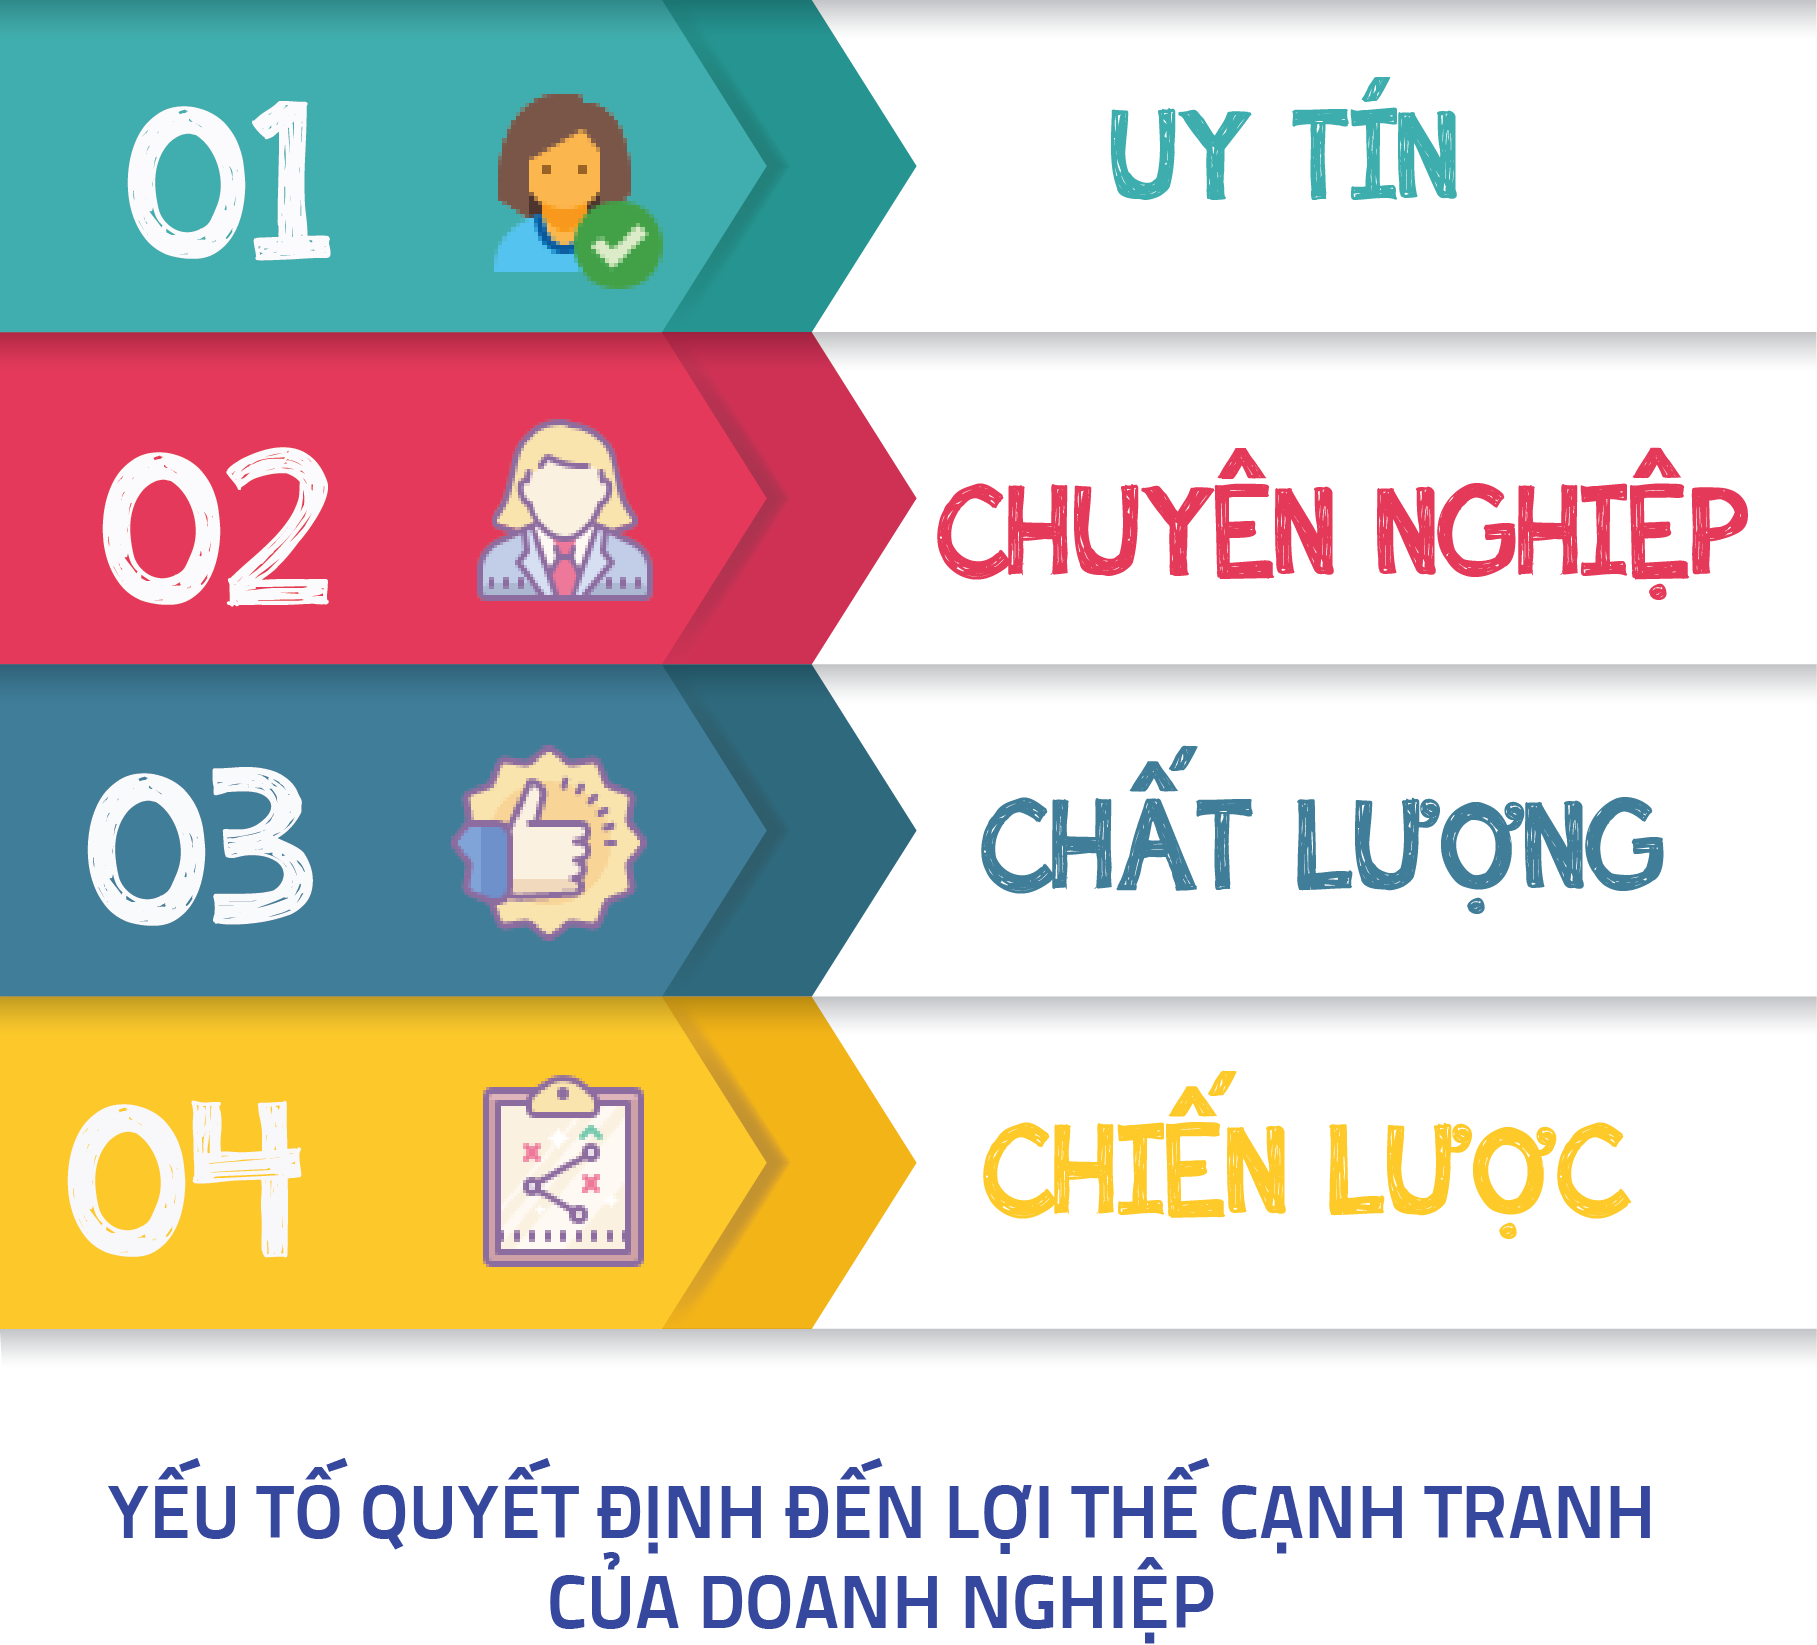 yeu to quyet dinh den loi the canh tranh cua doanh nghiep